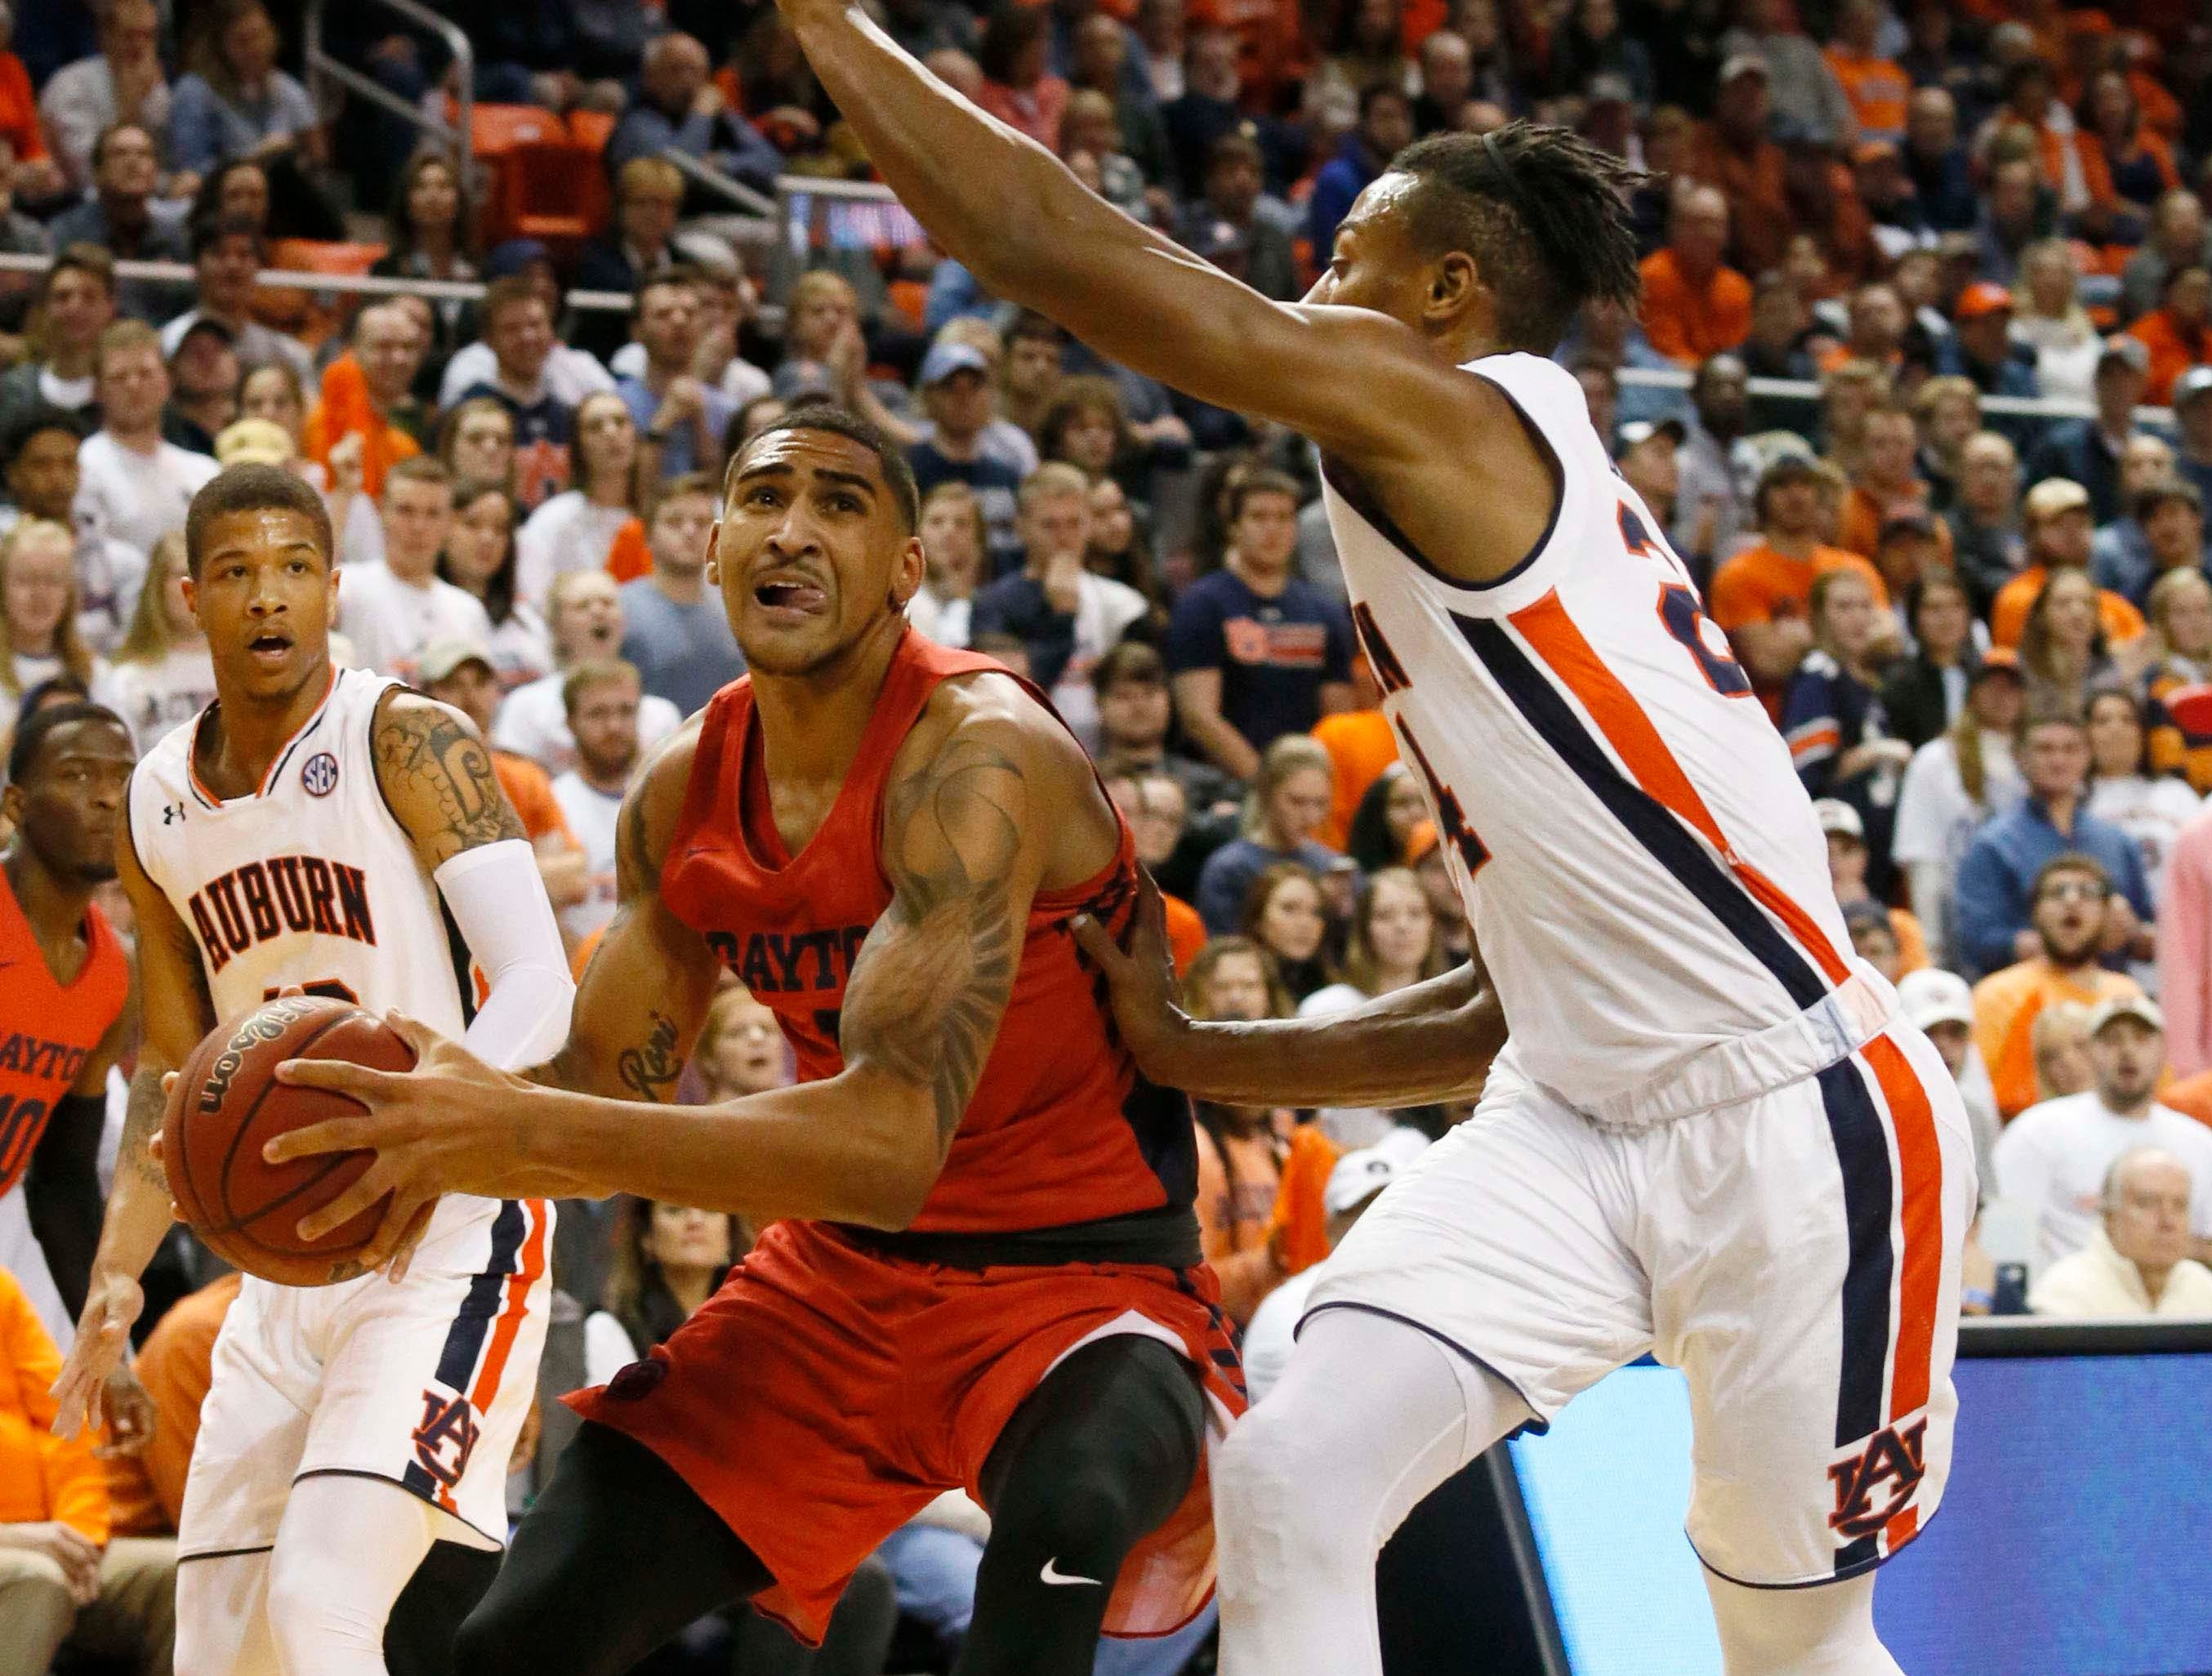 Dec 8, 2018; Auburn, AL, USA; Dayton Flyers forward Obi Toppin (1) goes for a shot as Auburn Tigers forward Anfernee McLemore (24) defends during the first half at Auburn Arena. Mandatory Credit: John Reed-USA TODAY Sports